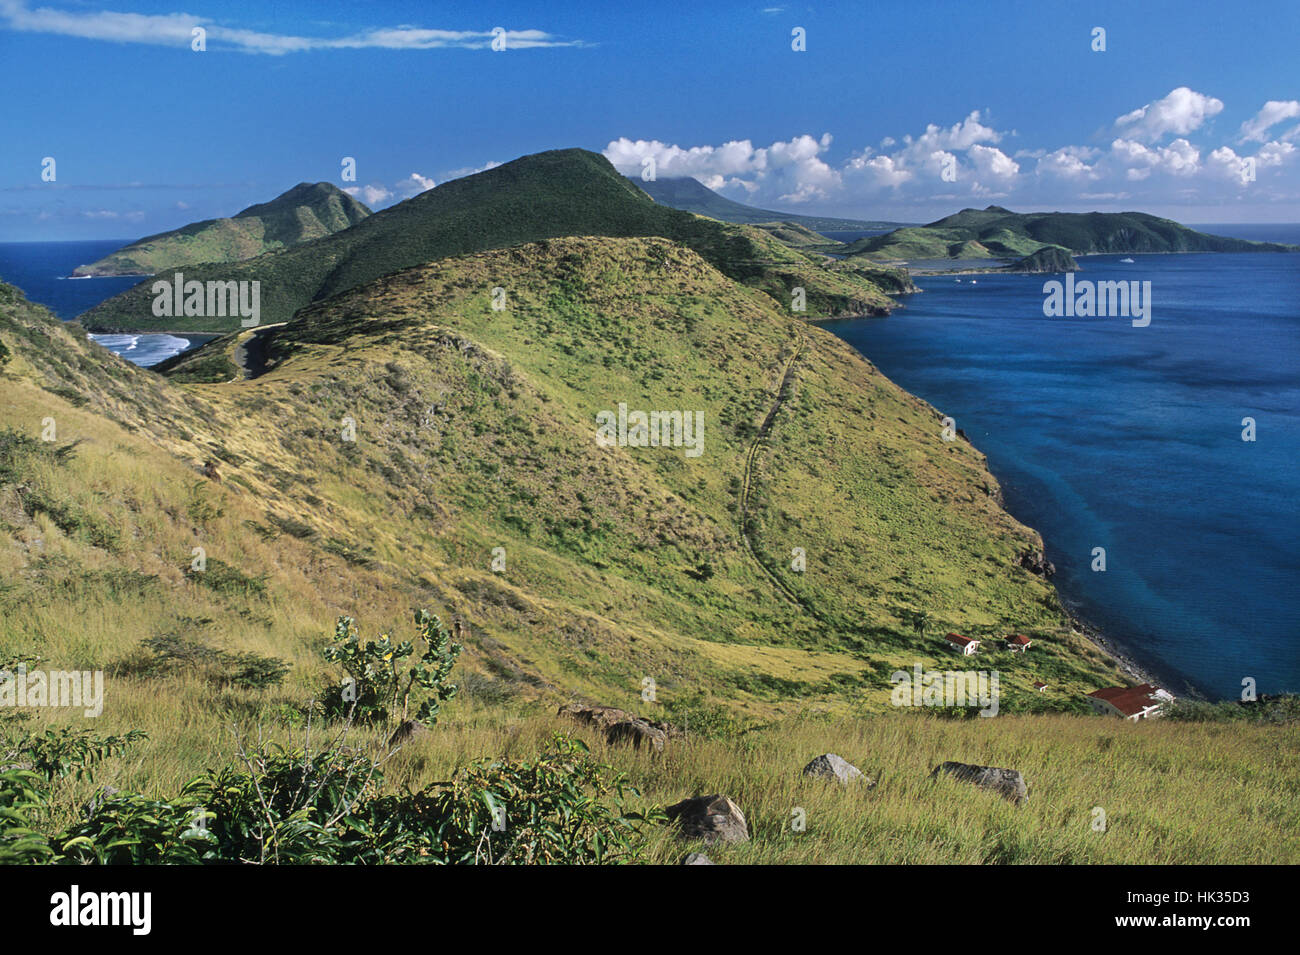 View of Turtle Bay, St. Kitts and Nevis, Caribbean - Stock Image